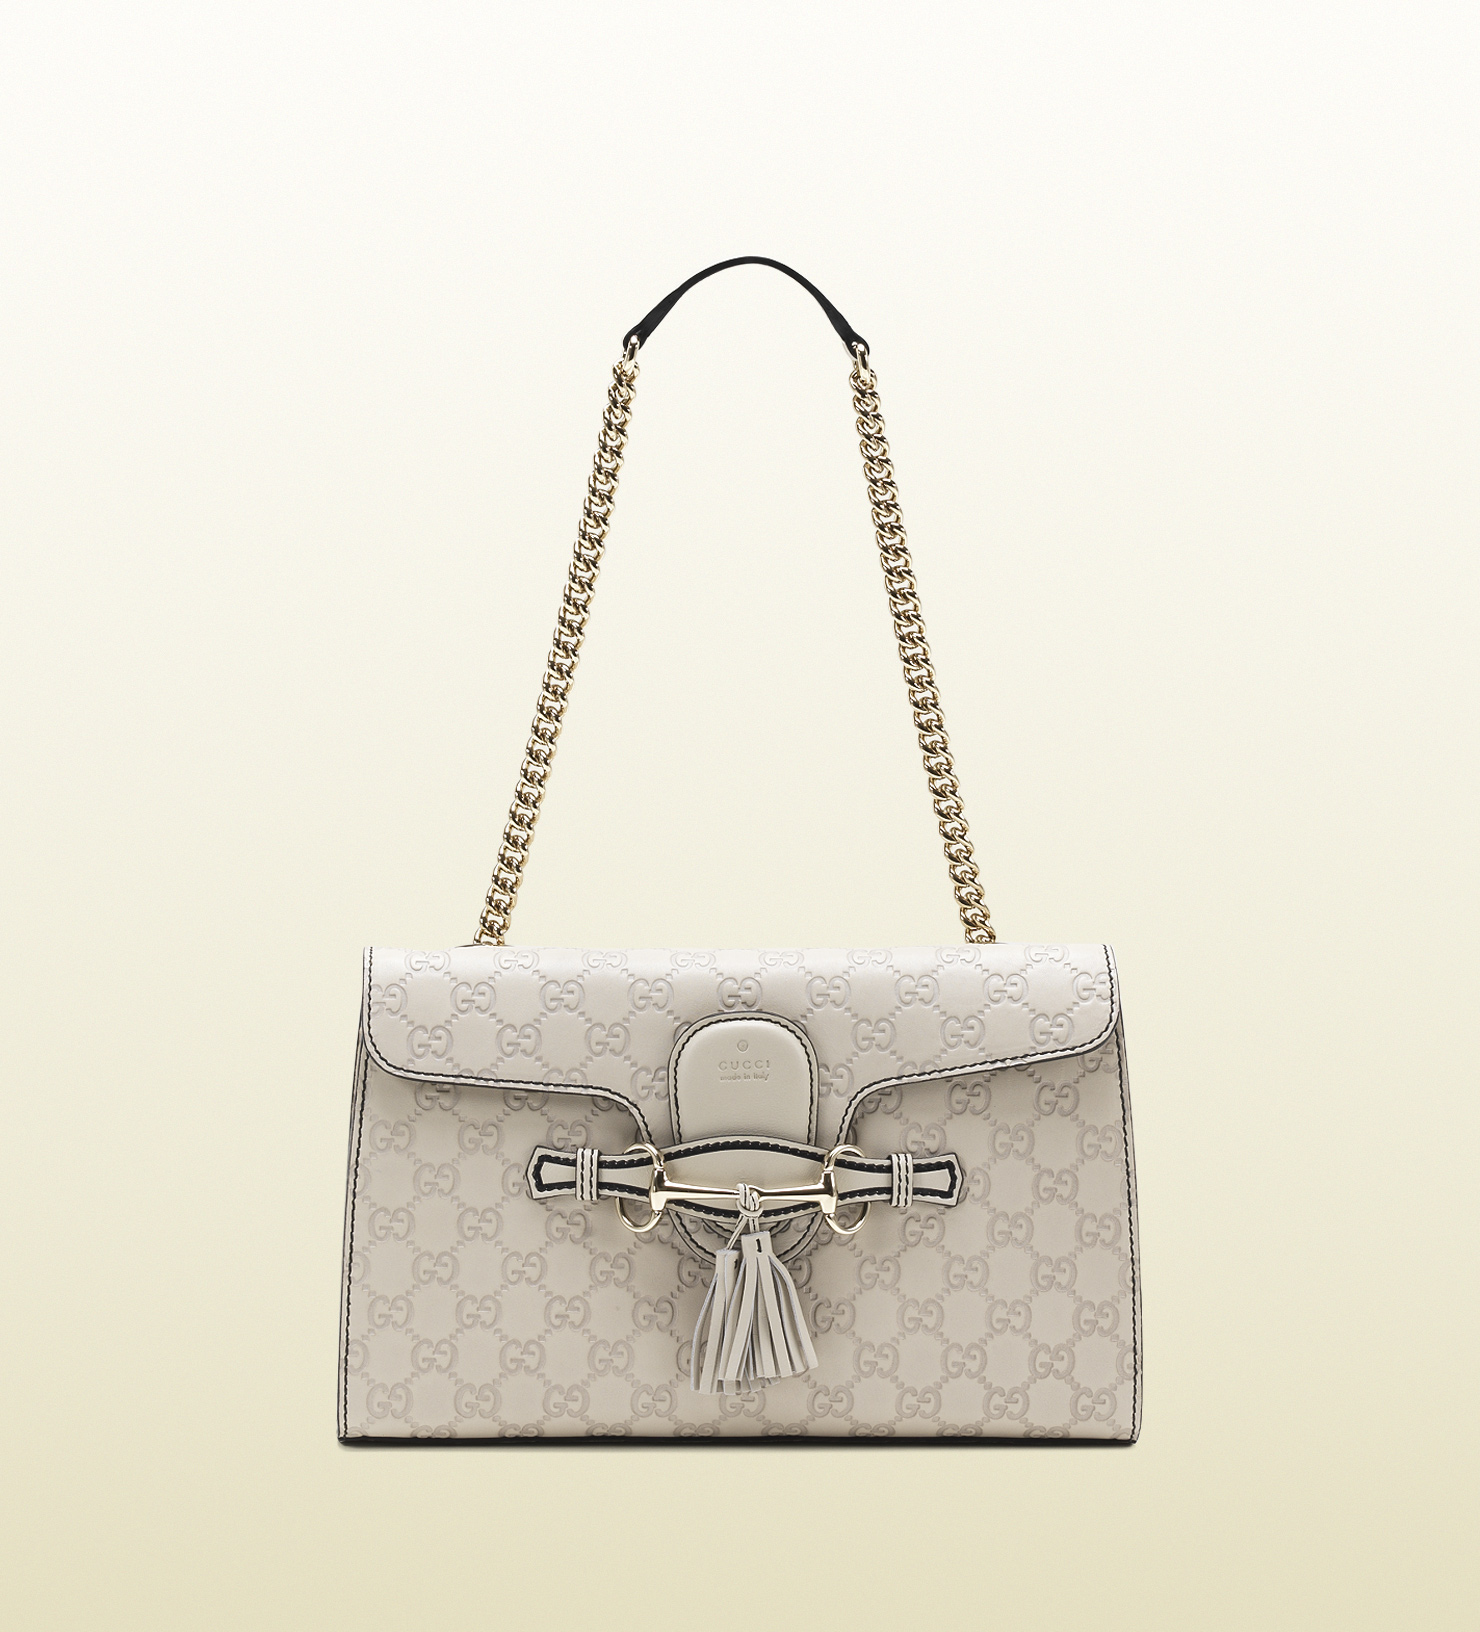 47e65cbbaa72 Gucci Emily White Handbag | Stanford Center for Opportunity Policy ...